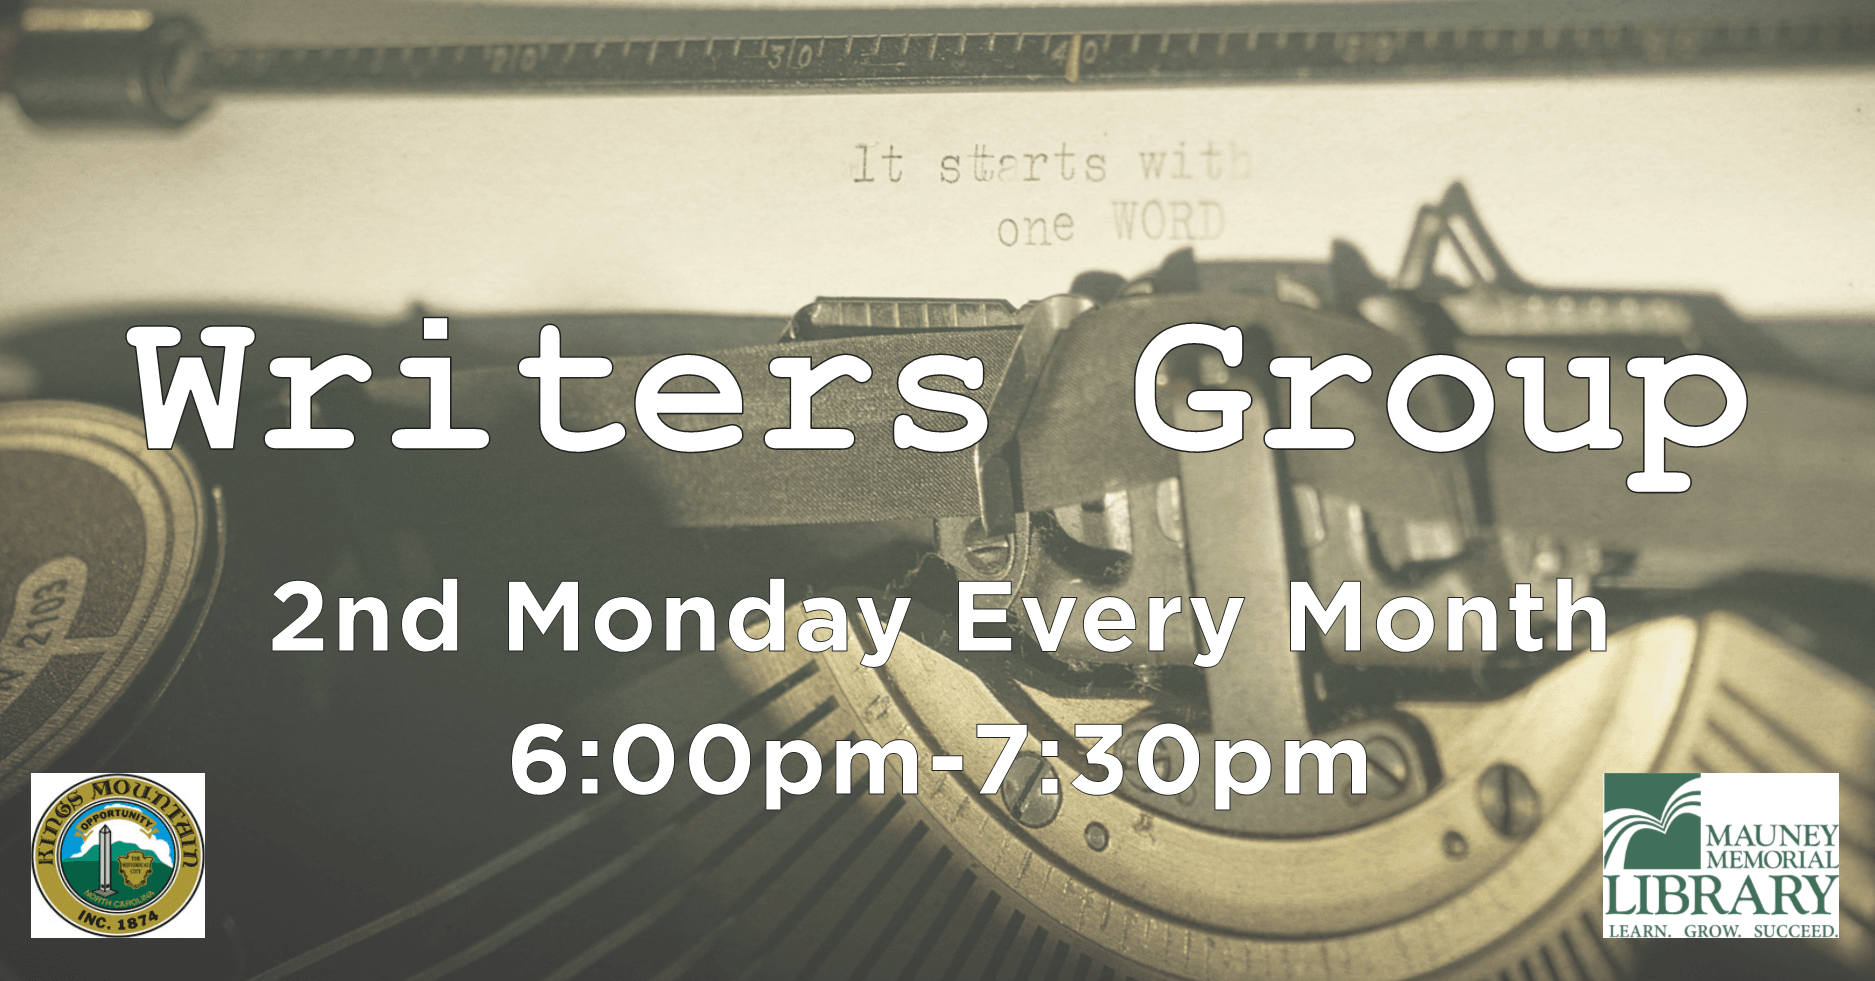 Writers Group - 2nd Monday Every Month, 6:00pm to 7:30pm